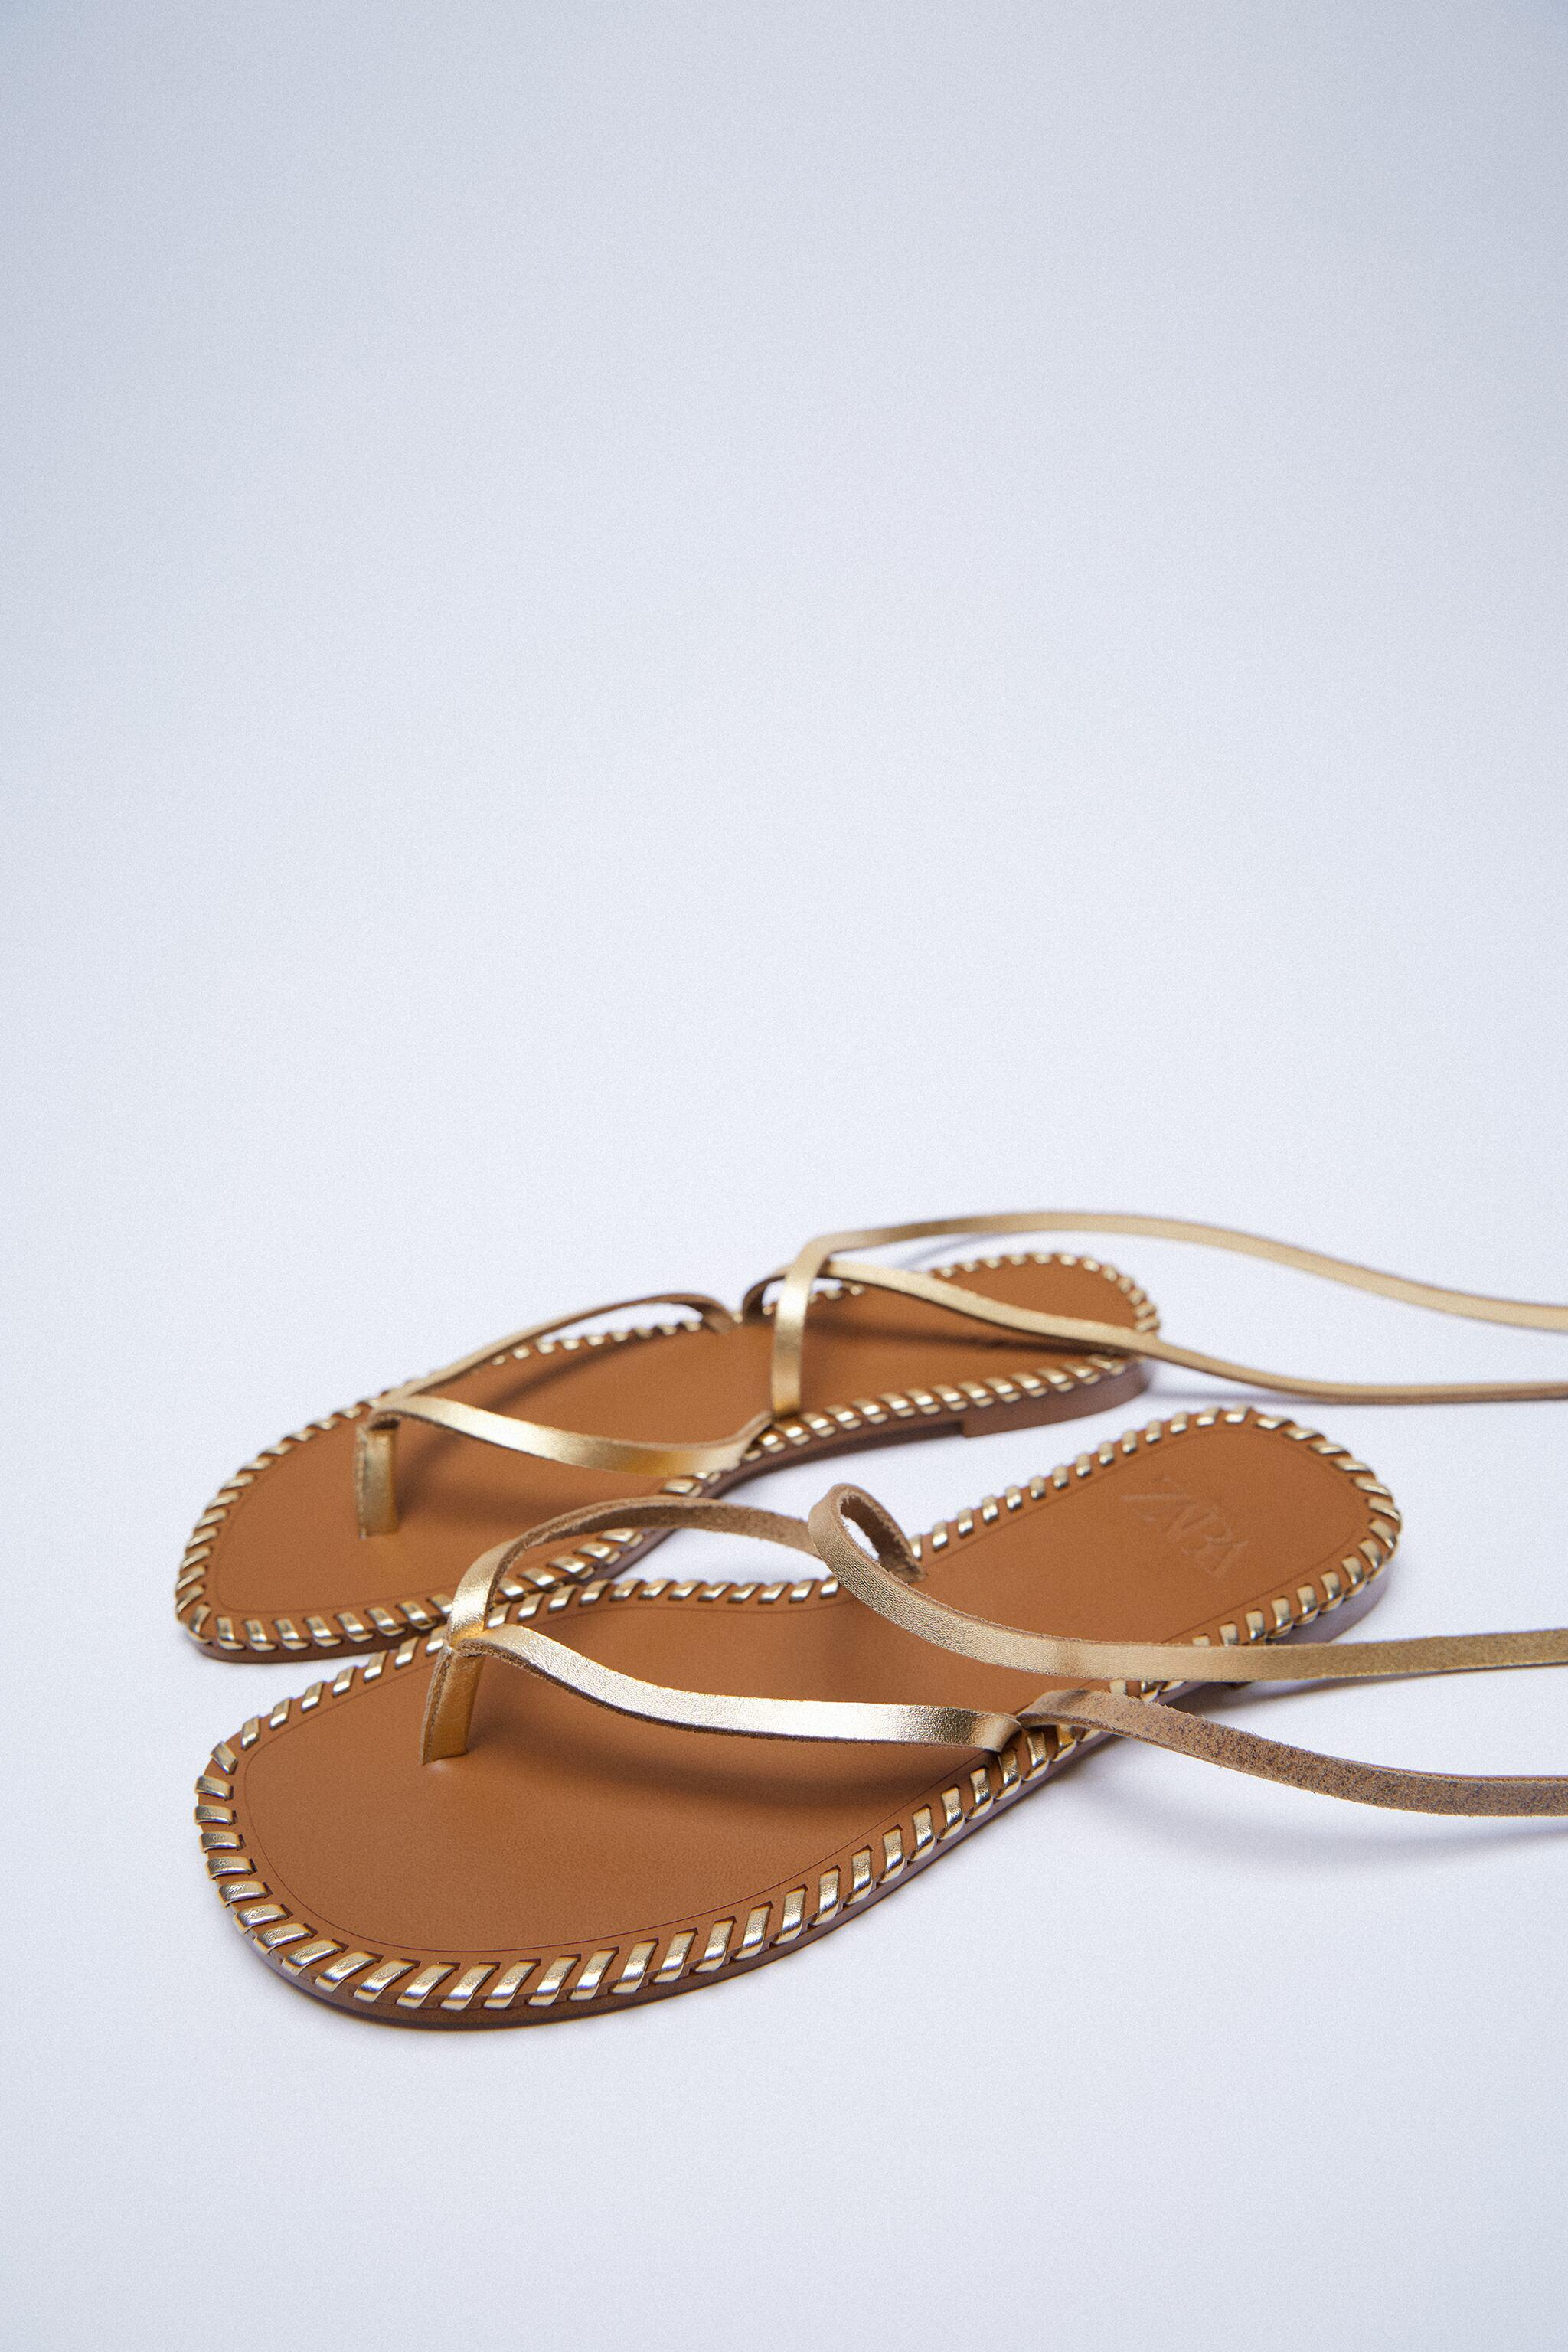 TOPSTITCHED LOW HEEL LEATHER SANDALS WITH ANKLE TIE 8